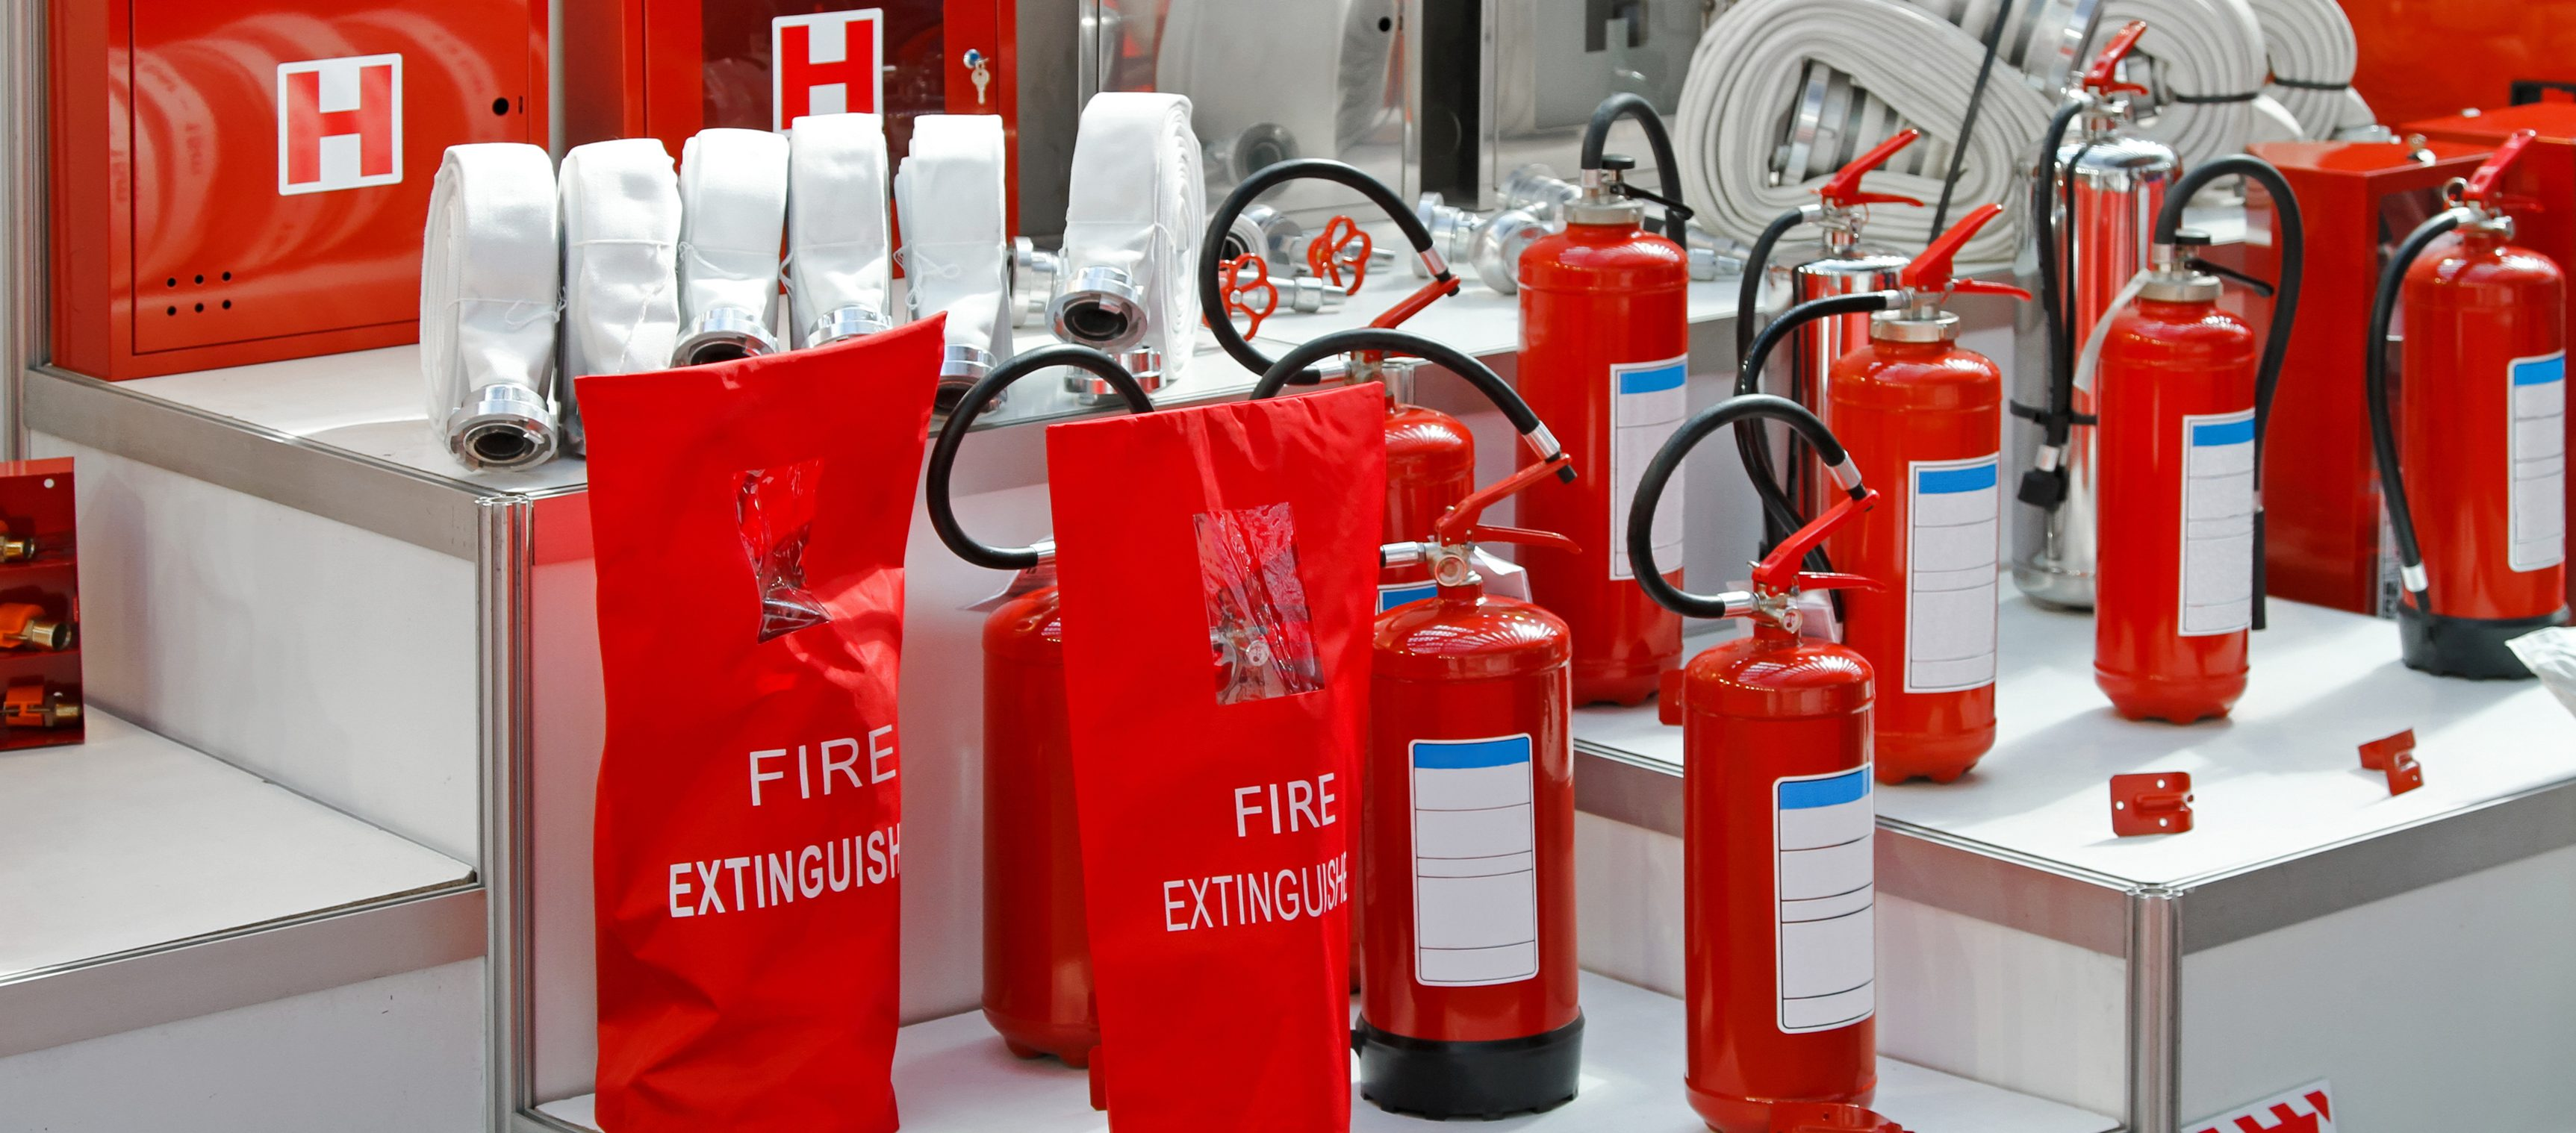 Test and Tag Fire Extinguishers and Fire Blankets